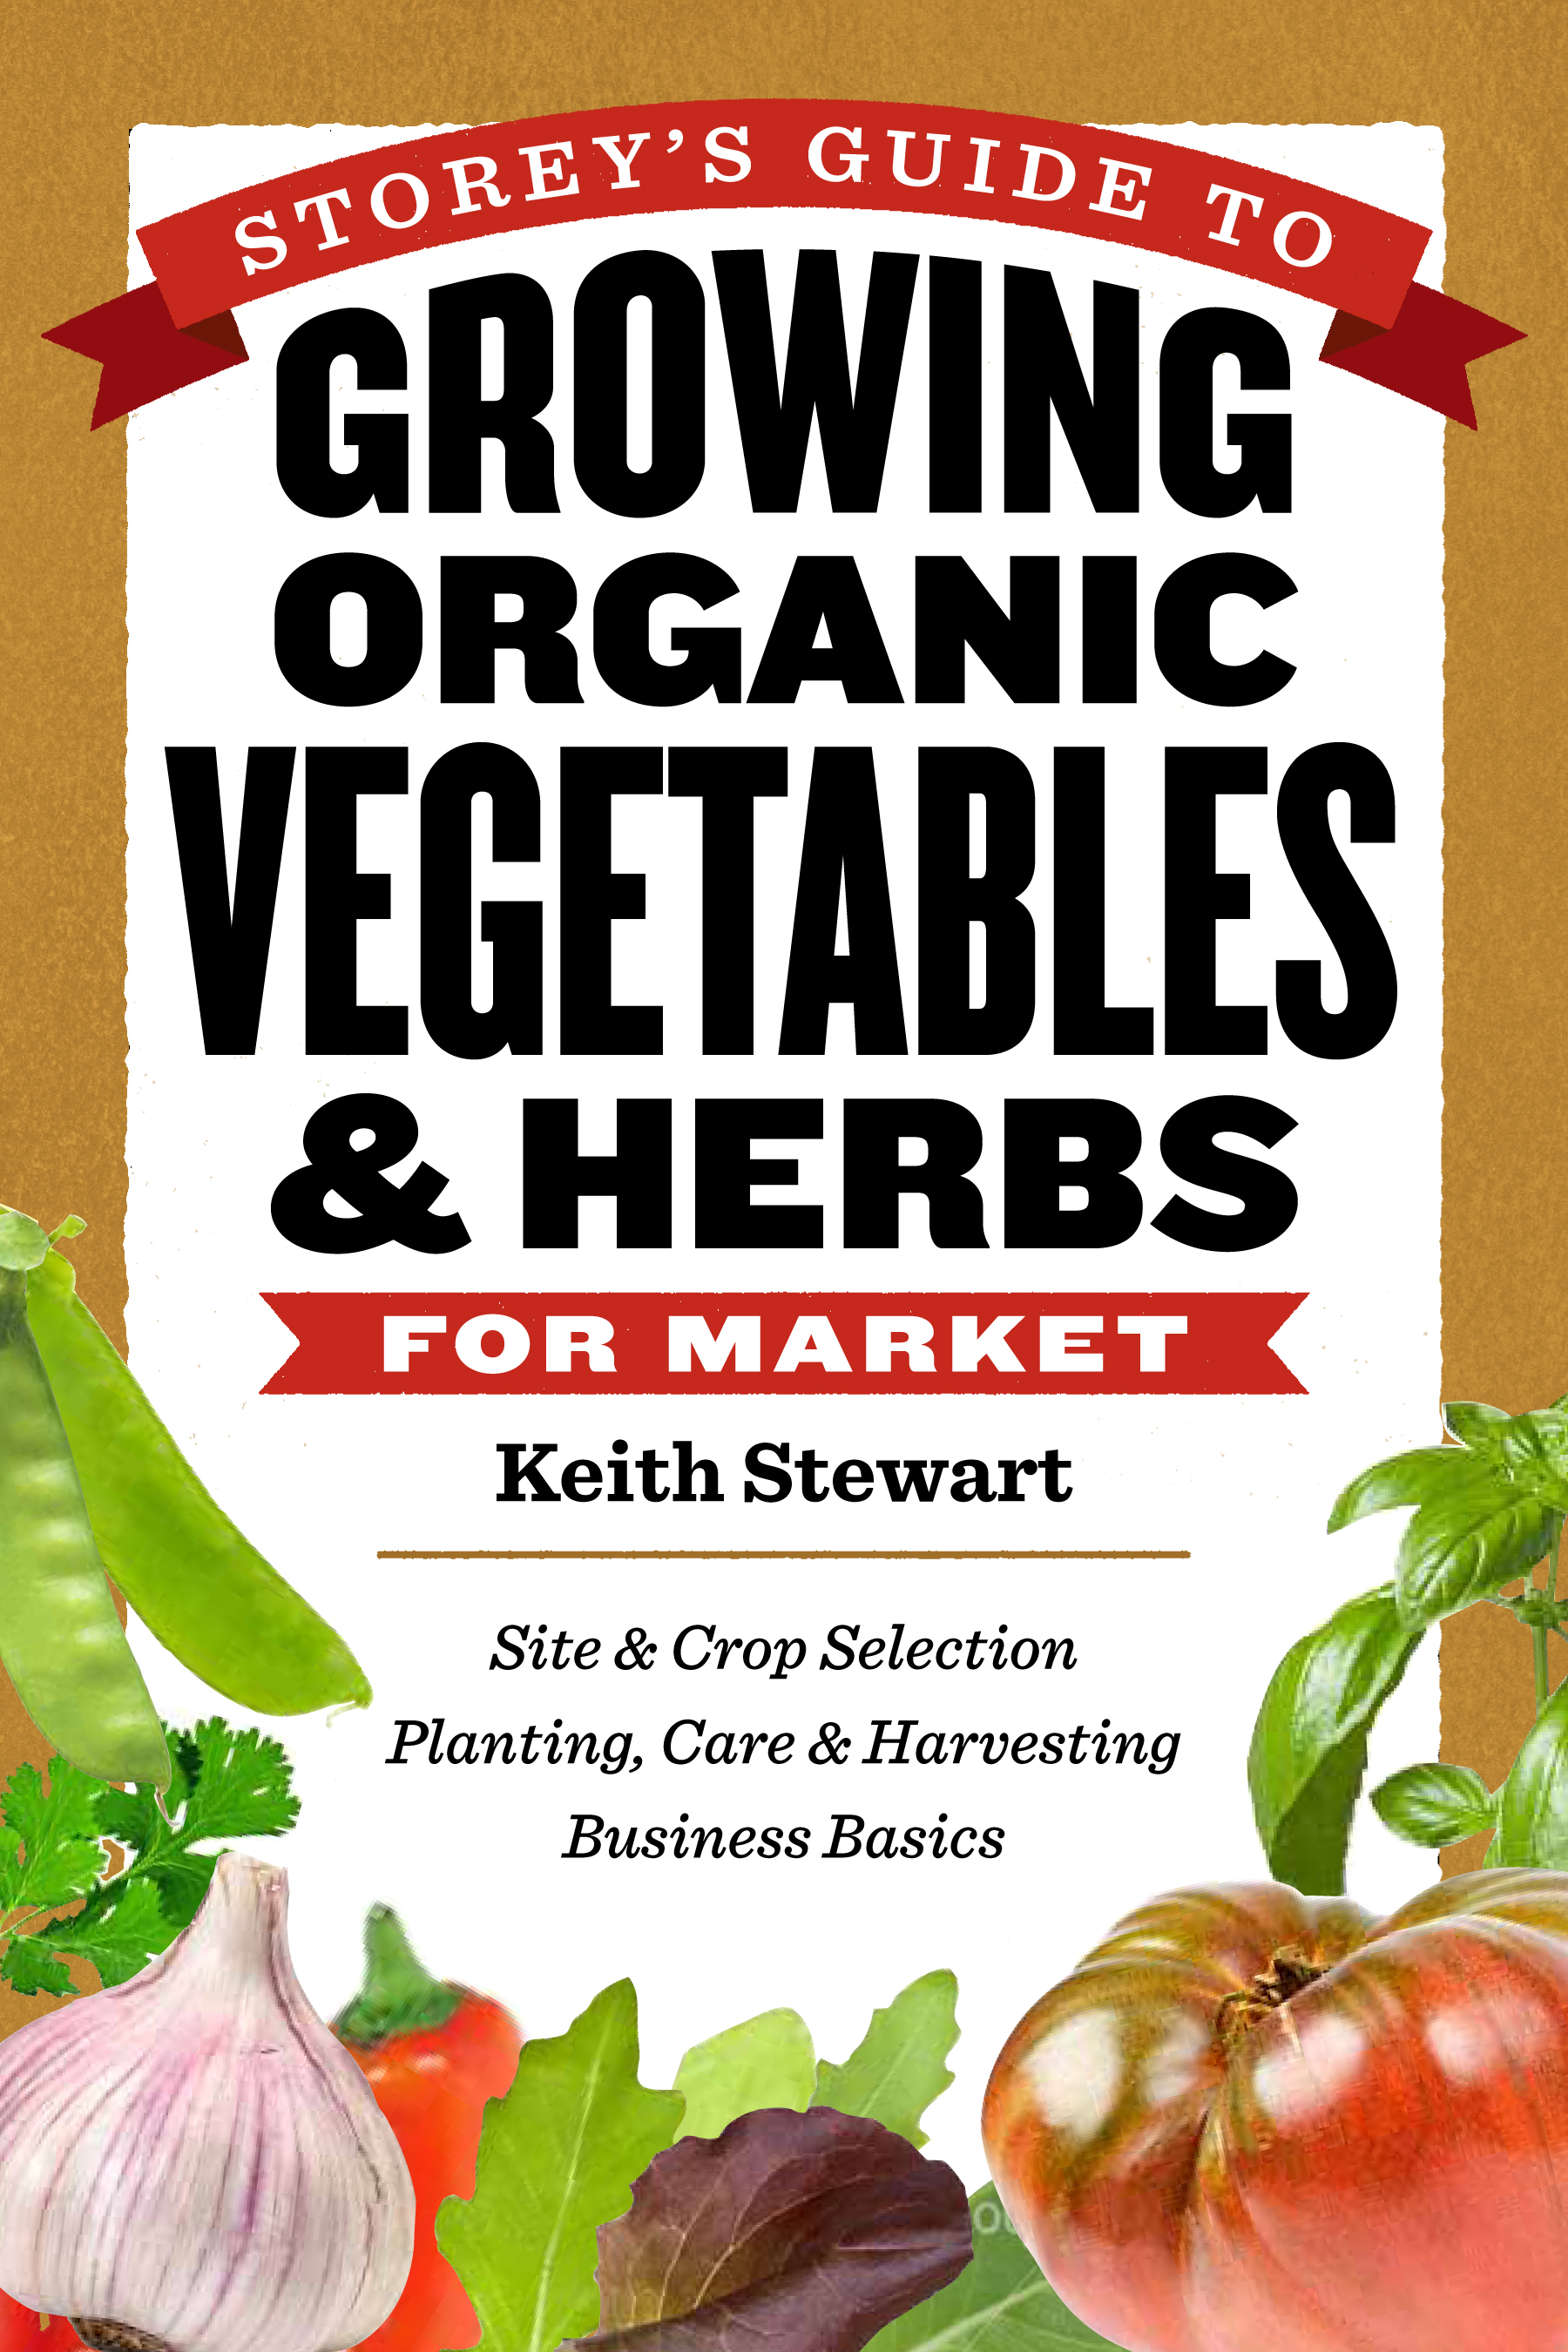 Storey's Guide to Growing Organic Vegetables & Herbs for Market Site & Crop Selection * Planting, Care & Harvesting * Business Basics - Keith Stewart